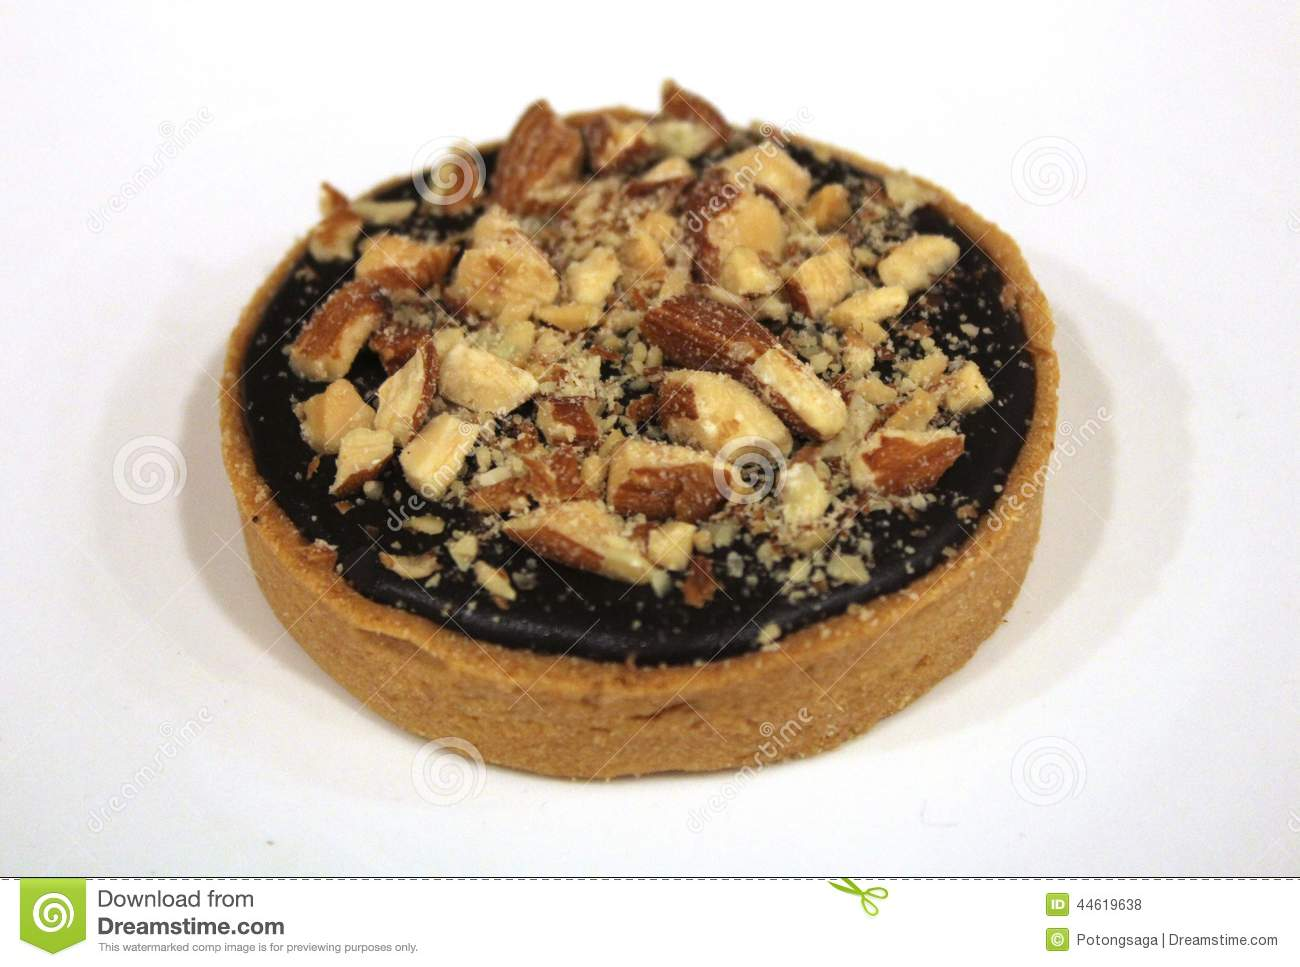 Chocolate Almond Tart Pastry on white plate background